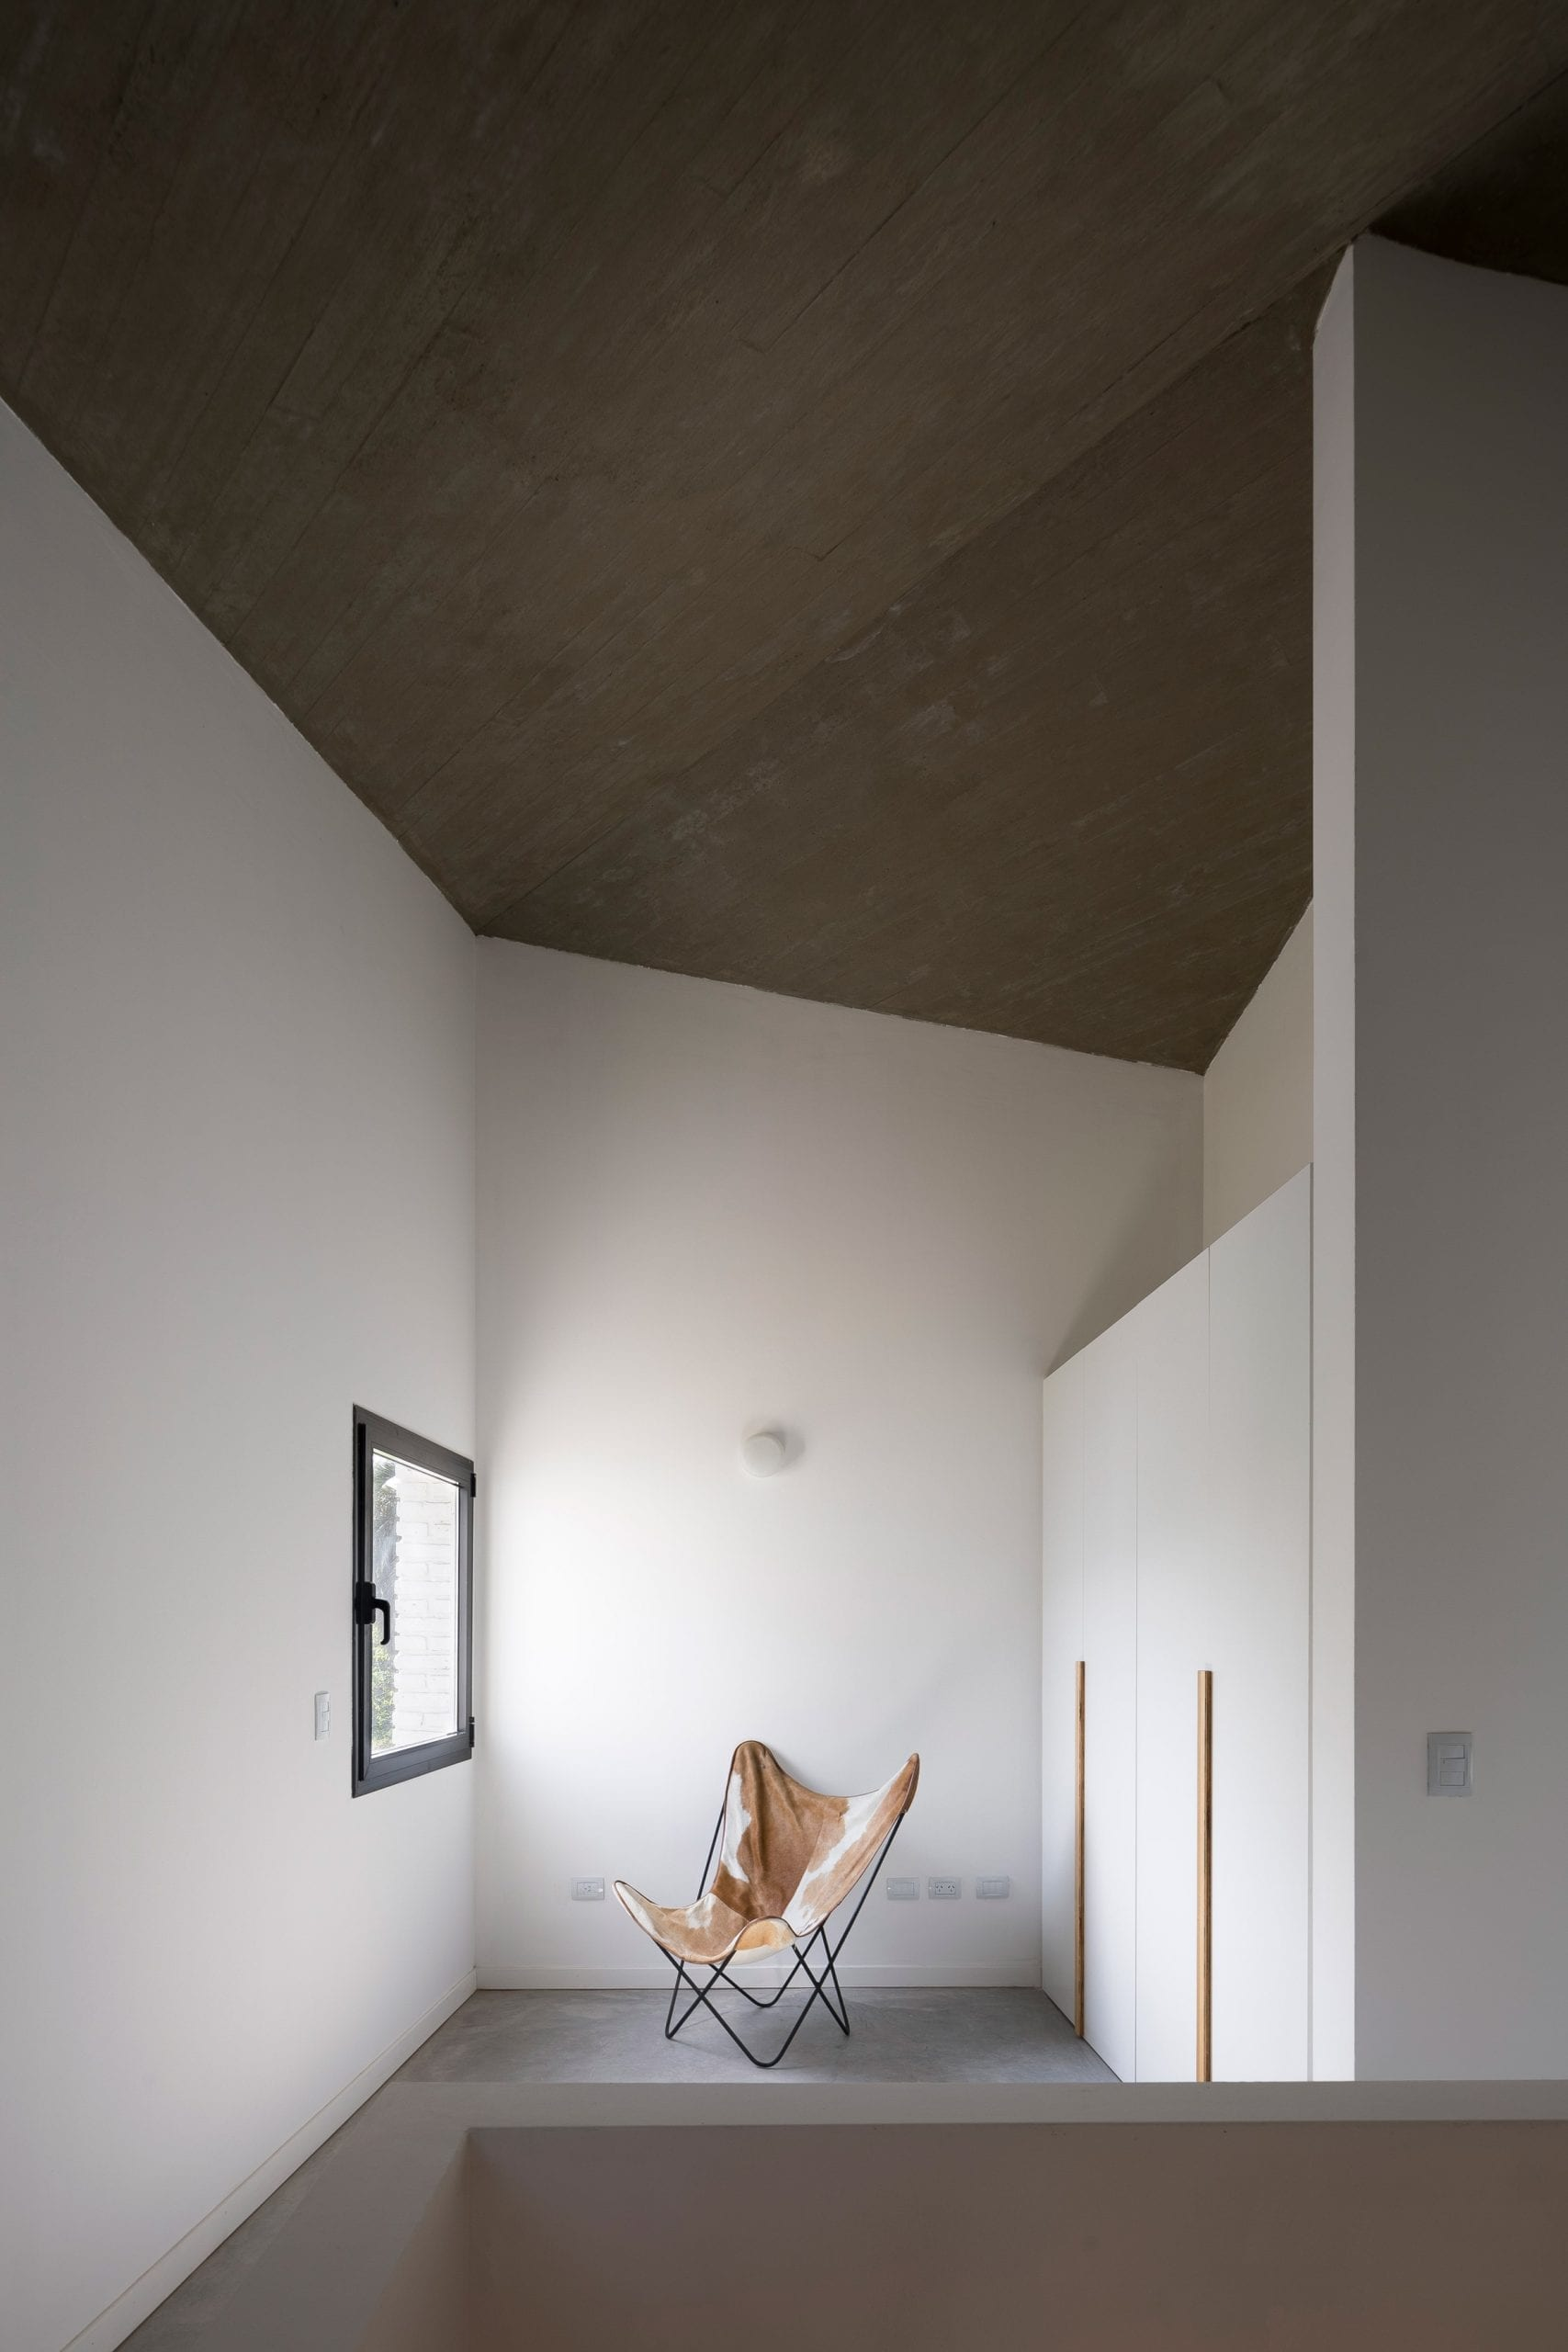 White walls with small window